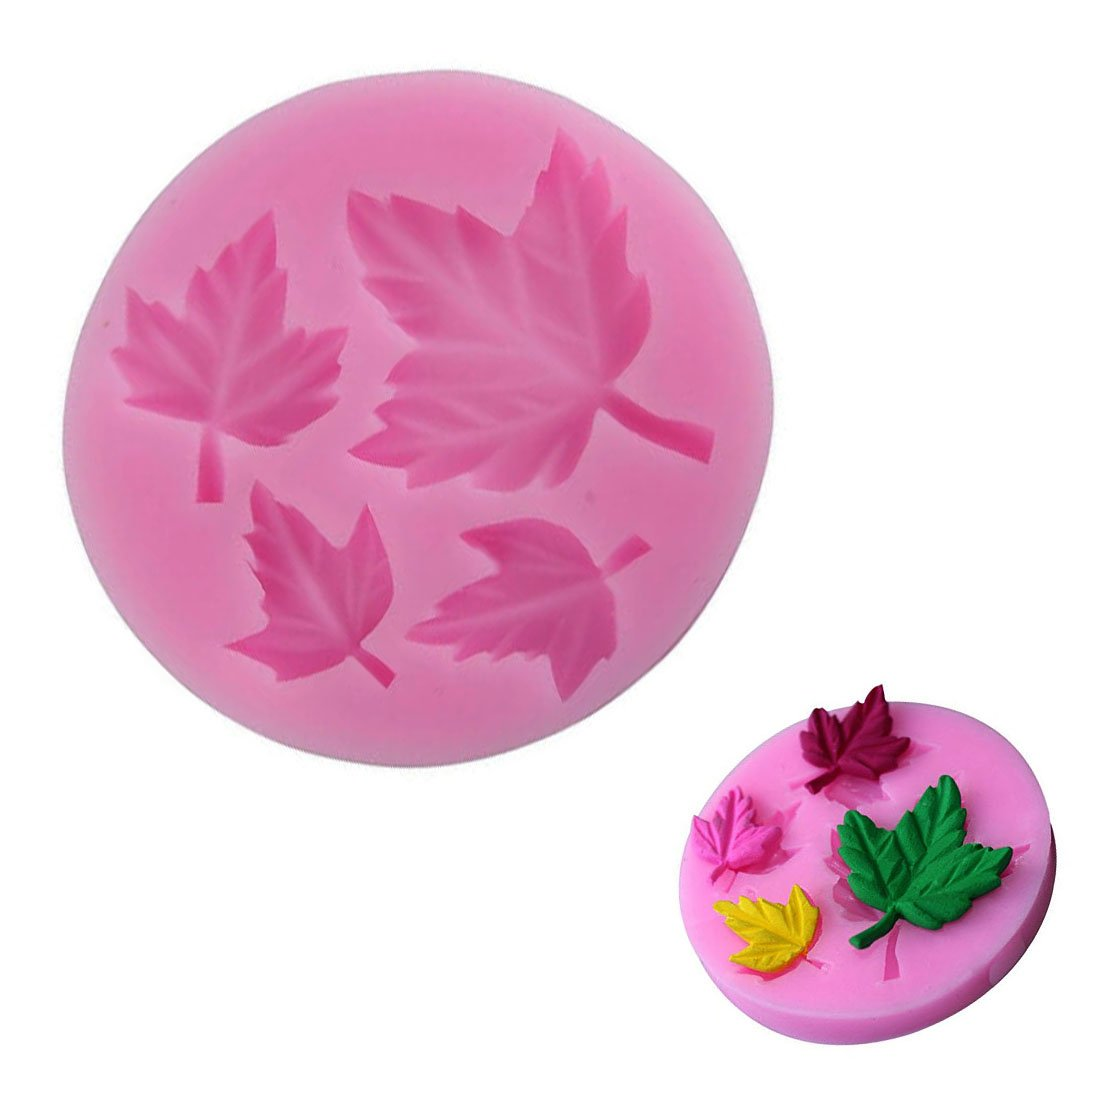 WJSYSHOP Maple Leaf Leaves Shape Silicone Fondant Sugar Decorating Mold Cake Baking Mould – Maple Leaves